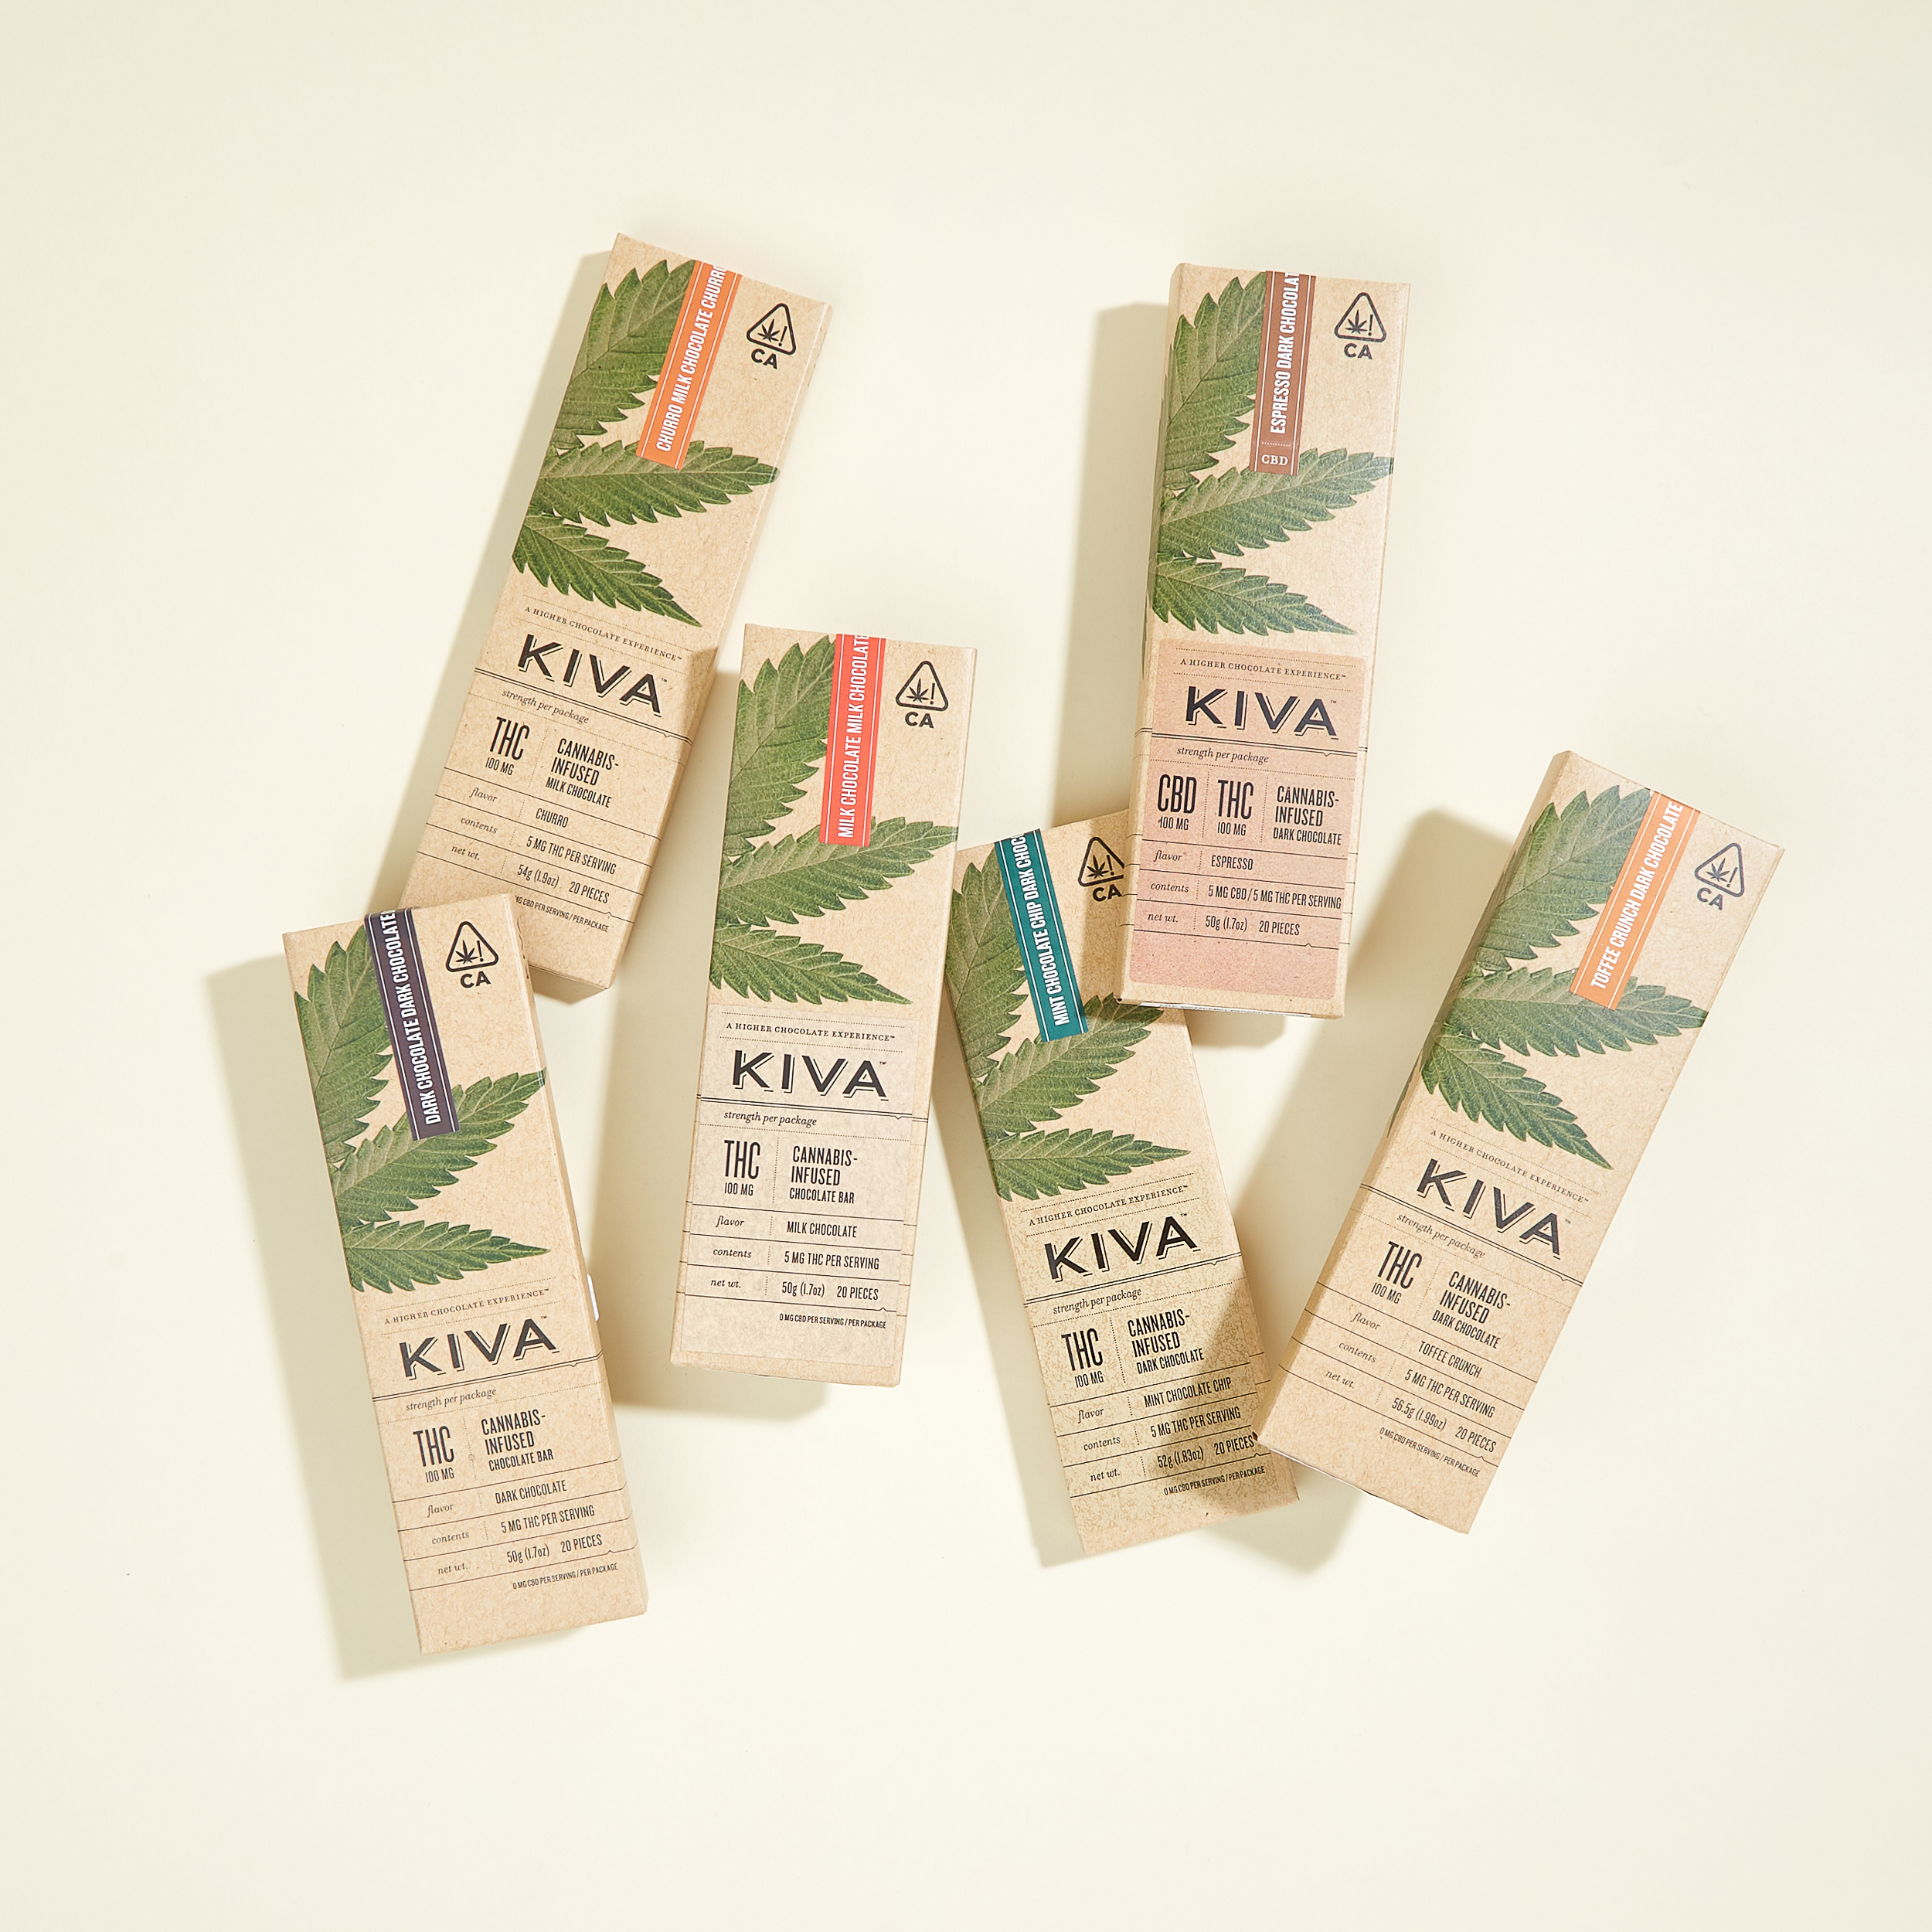 KIVA Cannabis Infused Chocolate